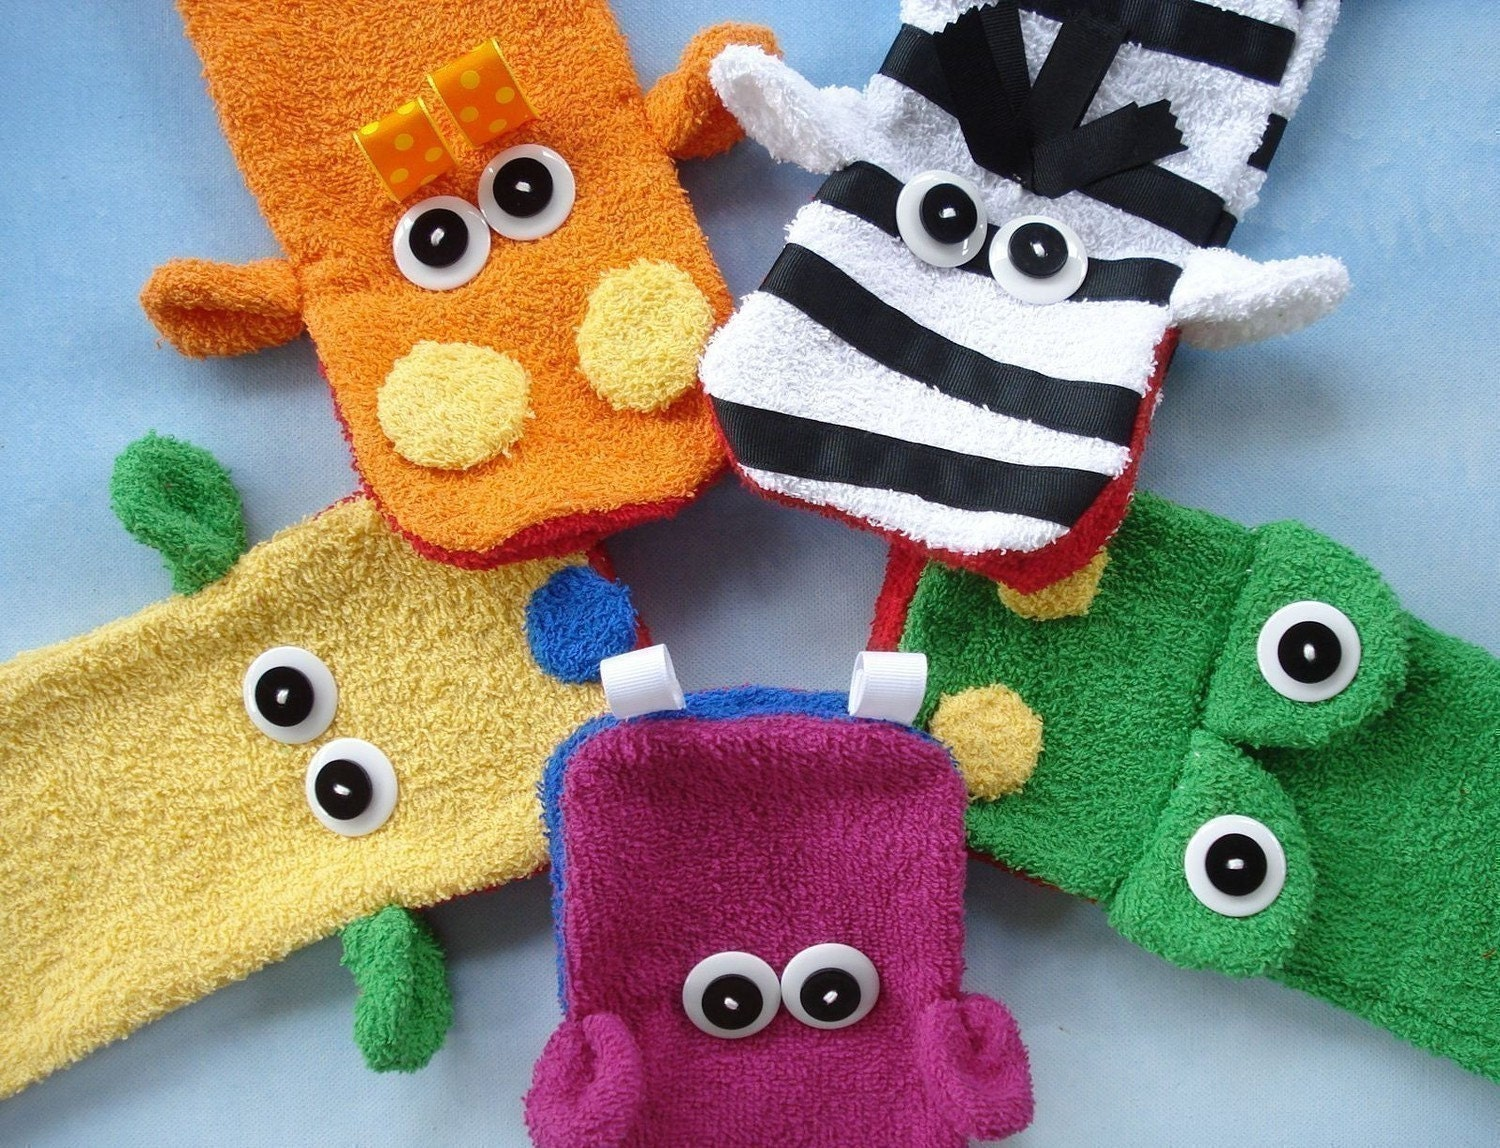 101 Hand Puppets - How To Make A Hand Puppet